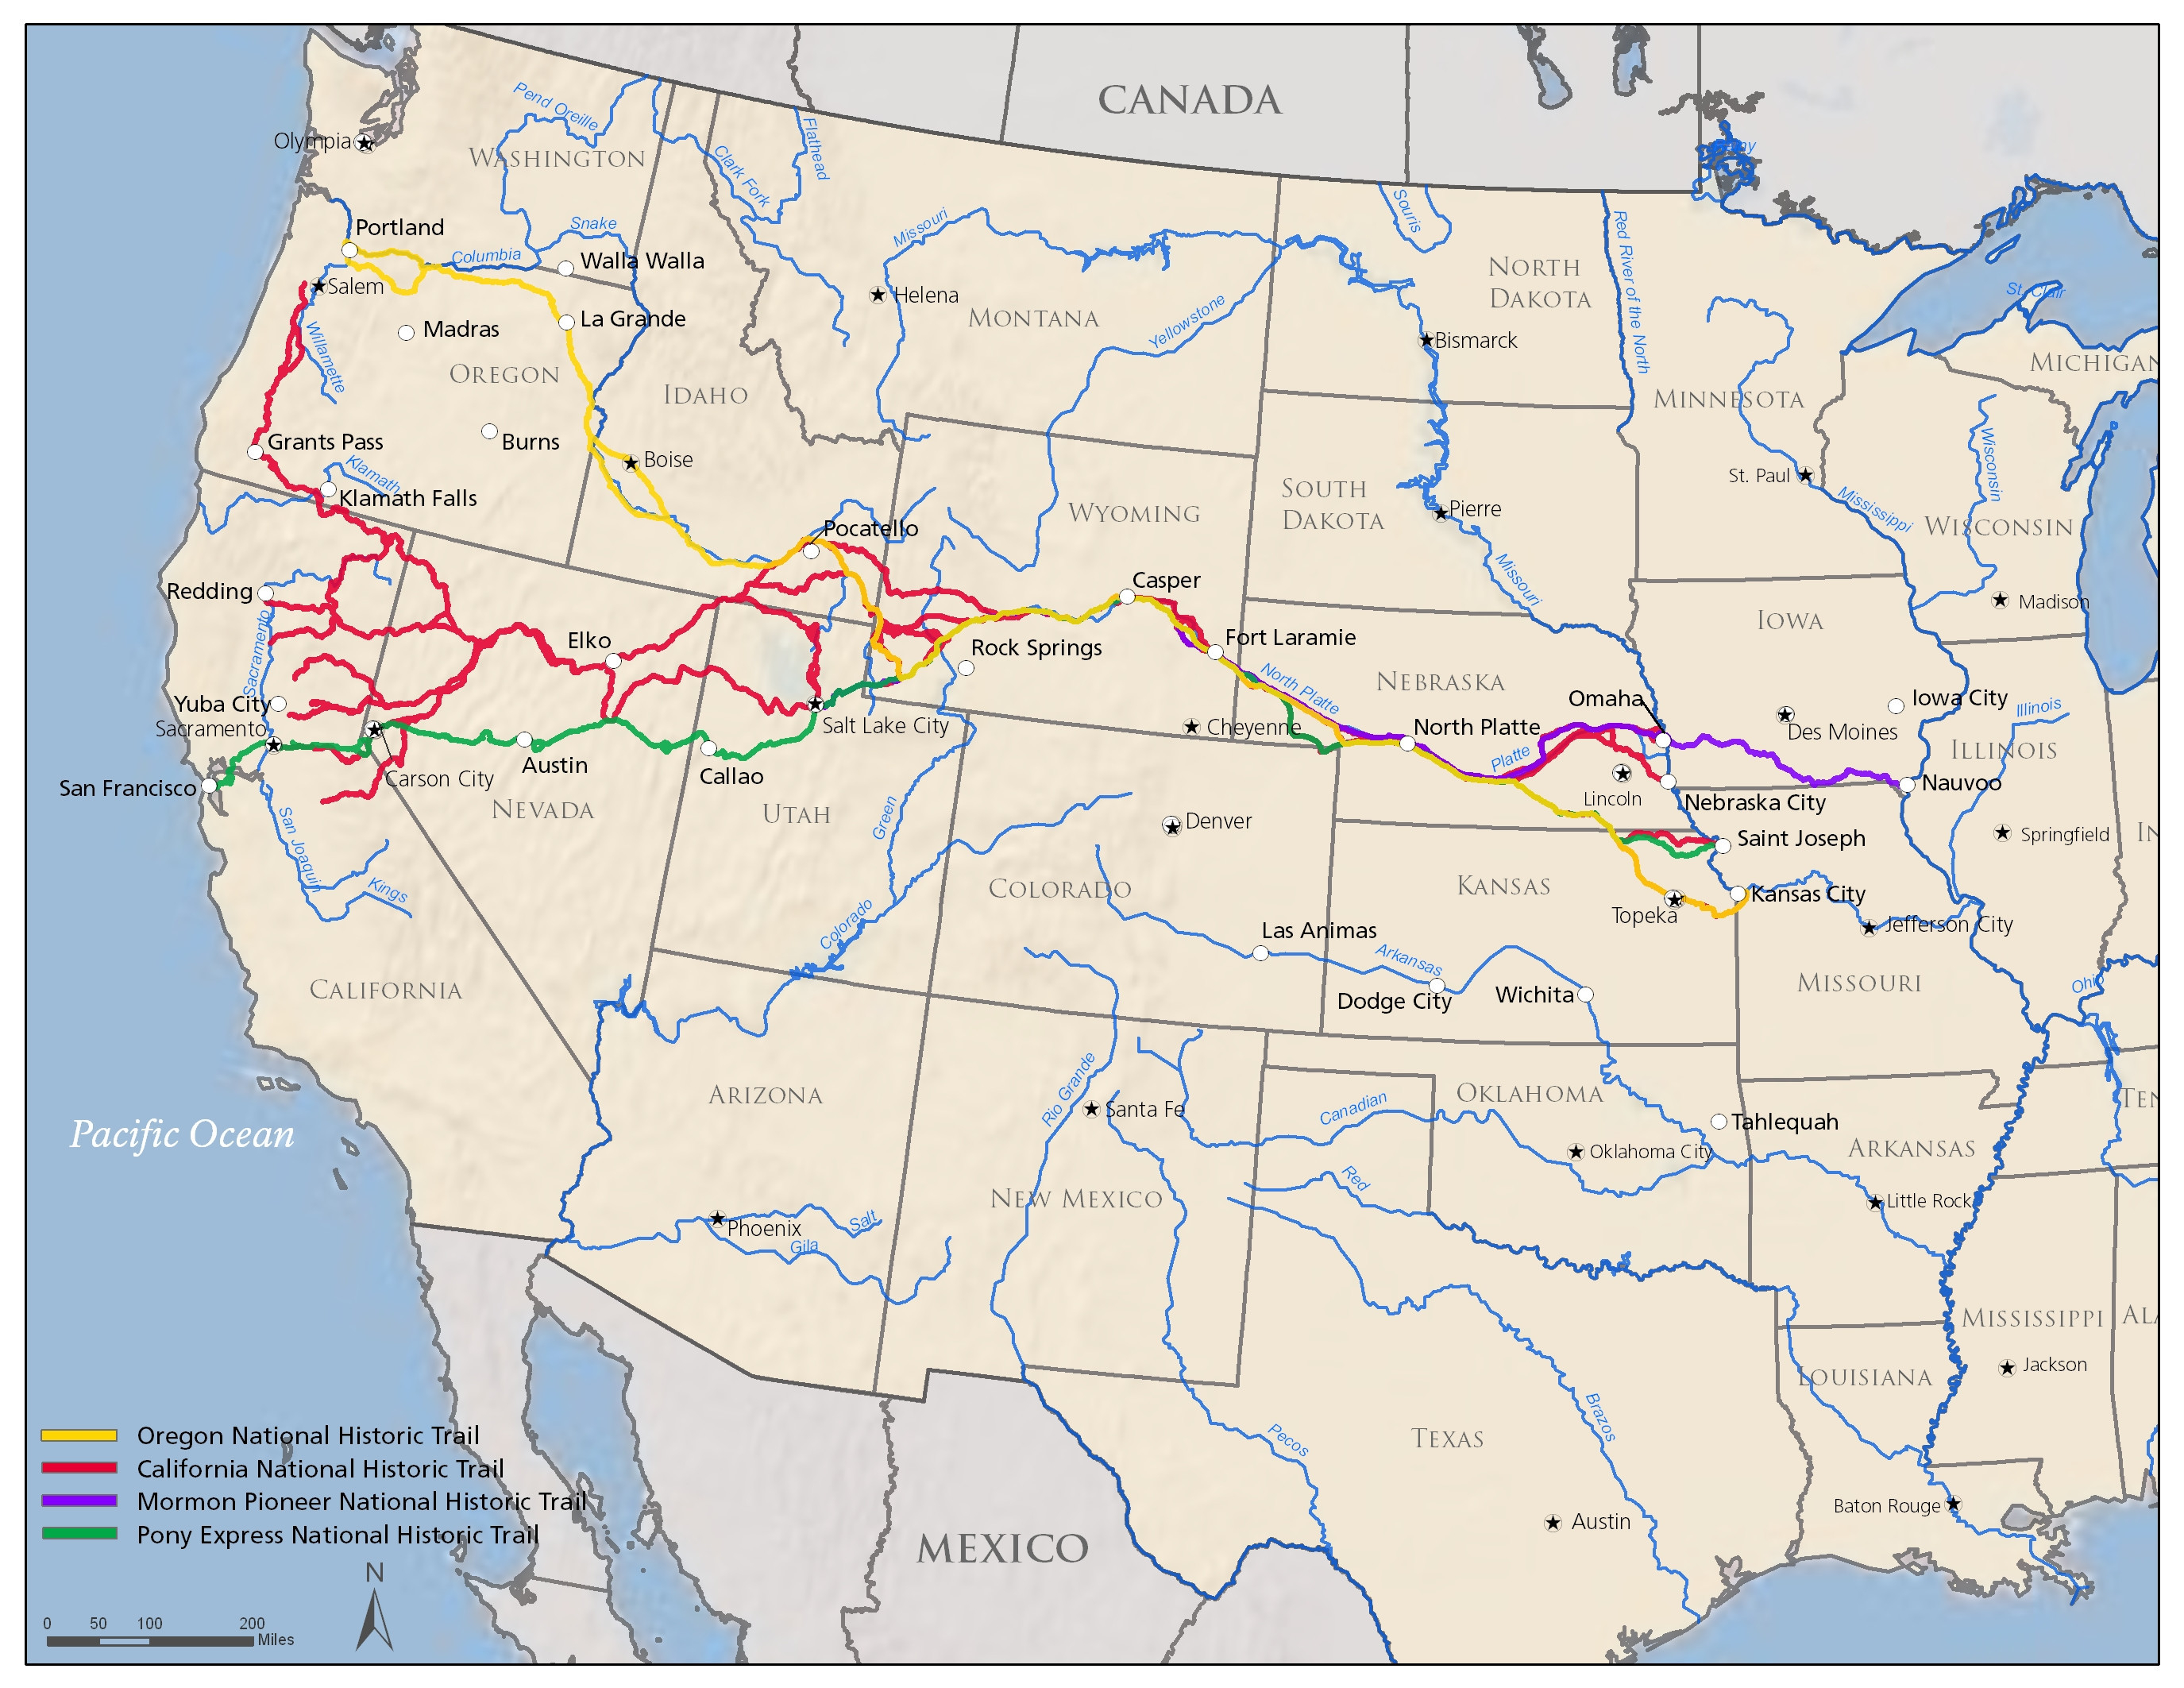 Road Map Of Southern Oregon And Northern California Detailed Map - Road Map Of Southern Oregon And Northern California